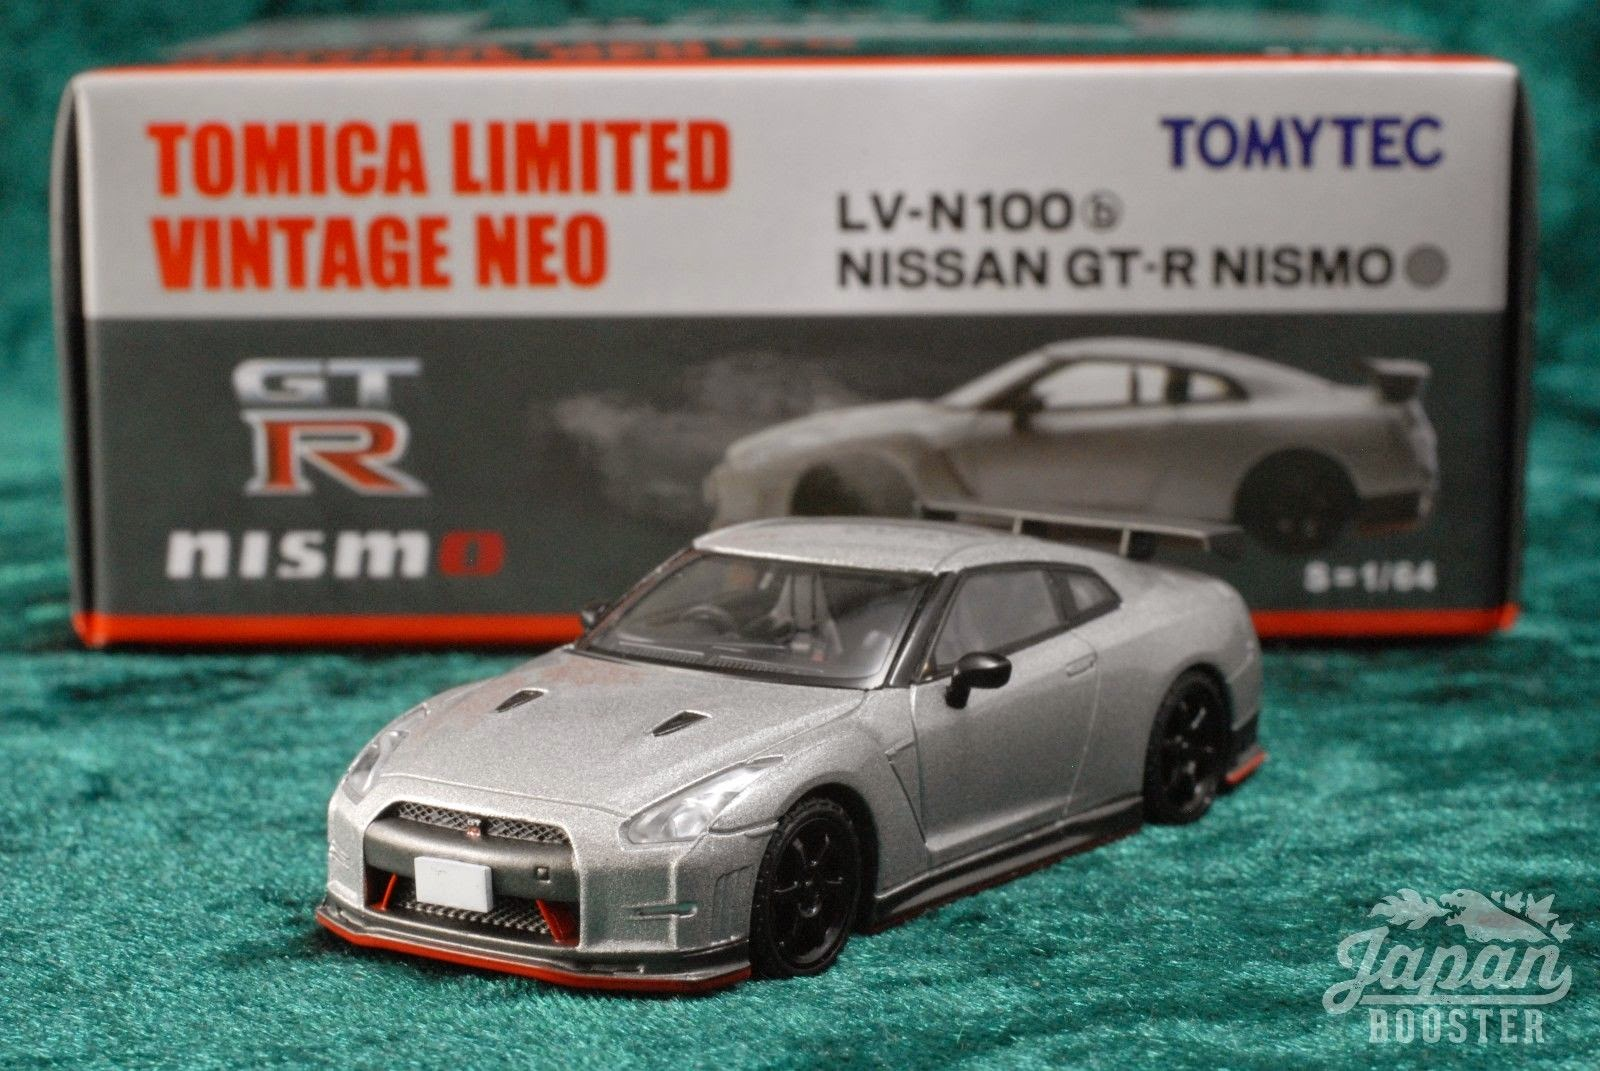 TLV Nissan GT-R Nismos are here!